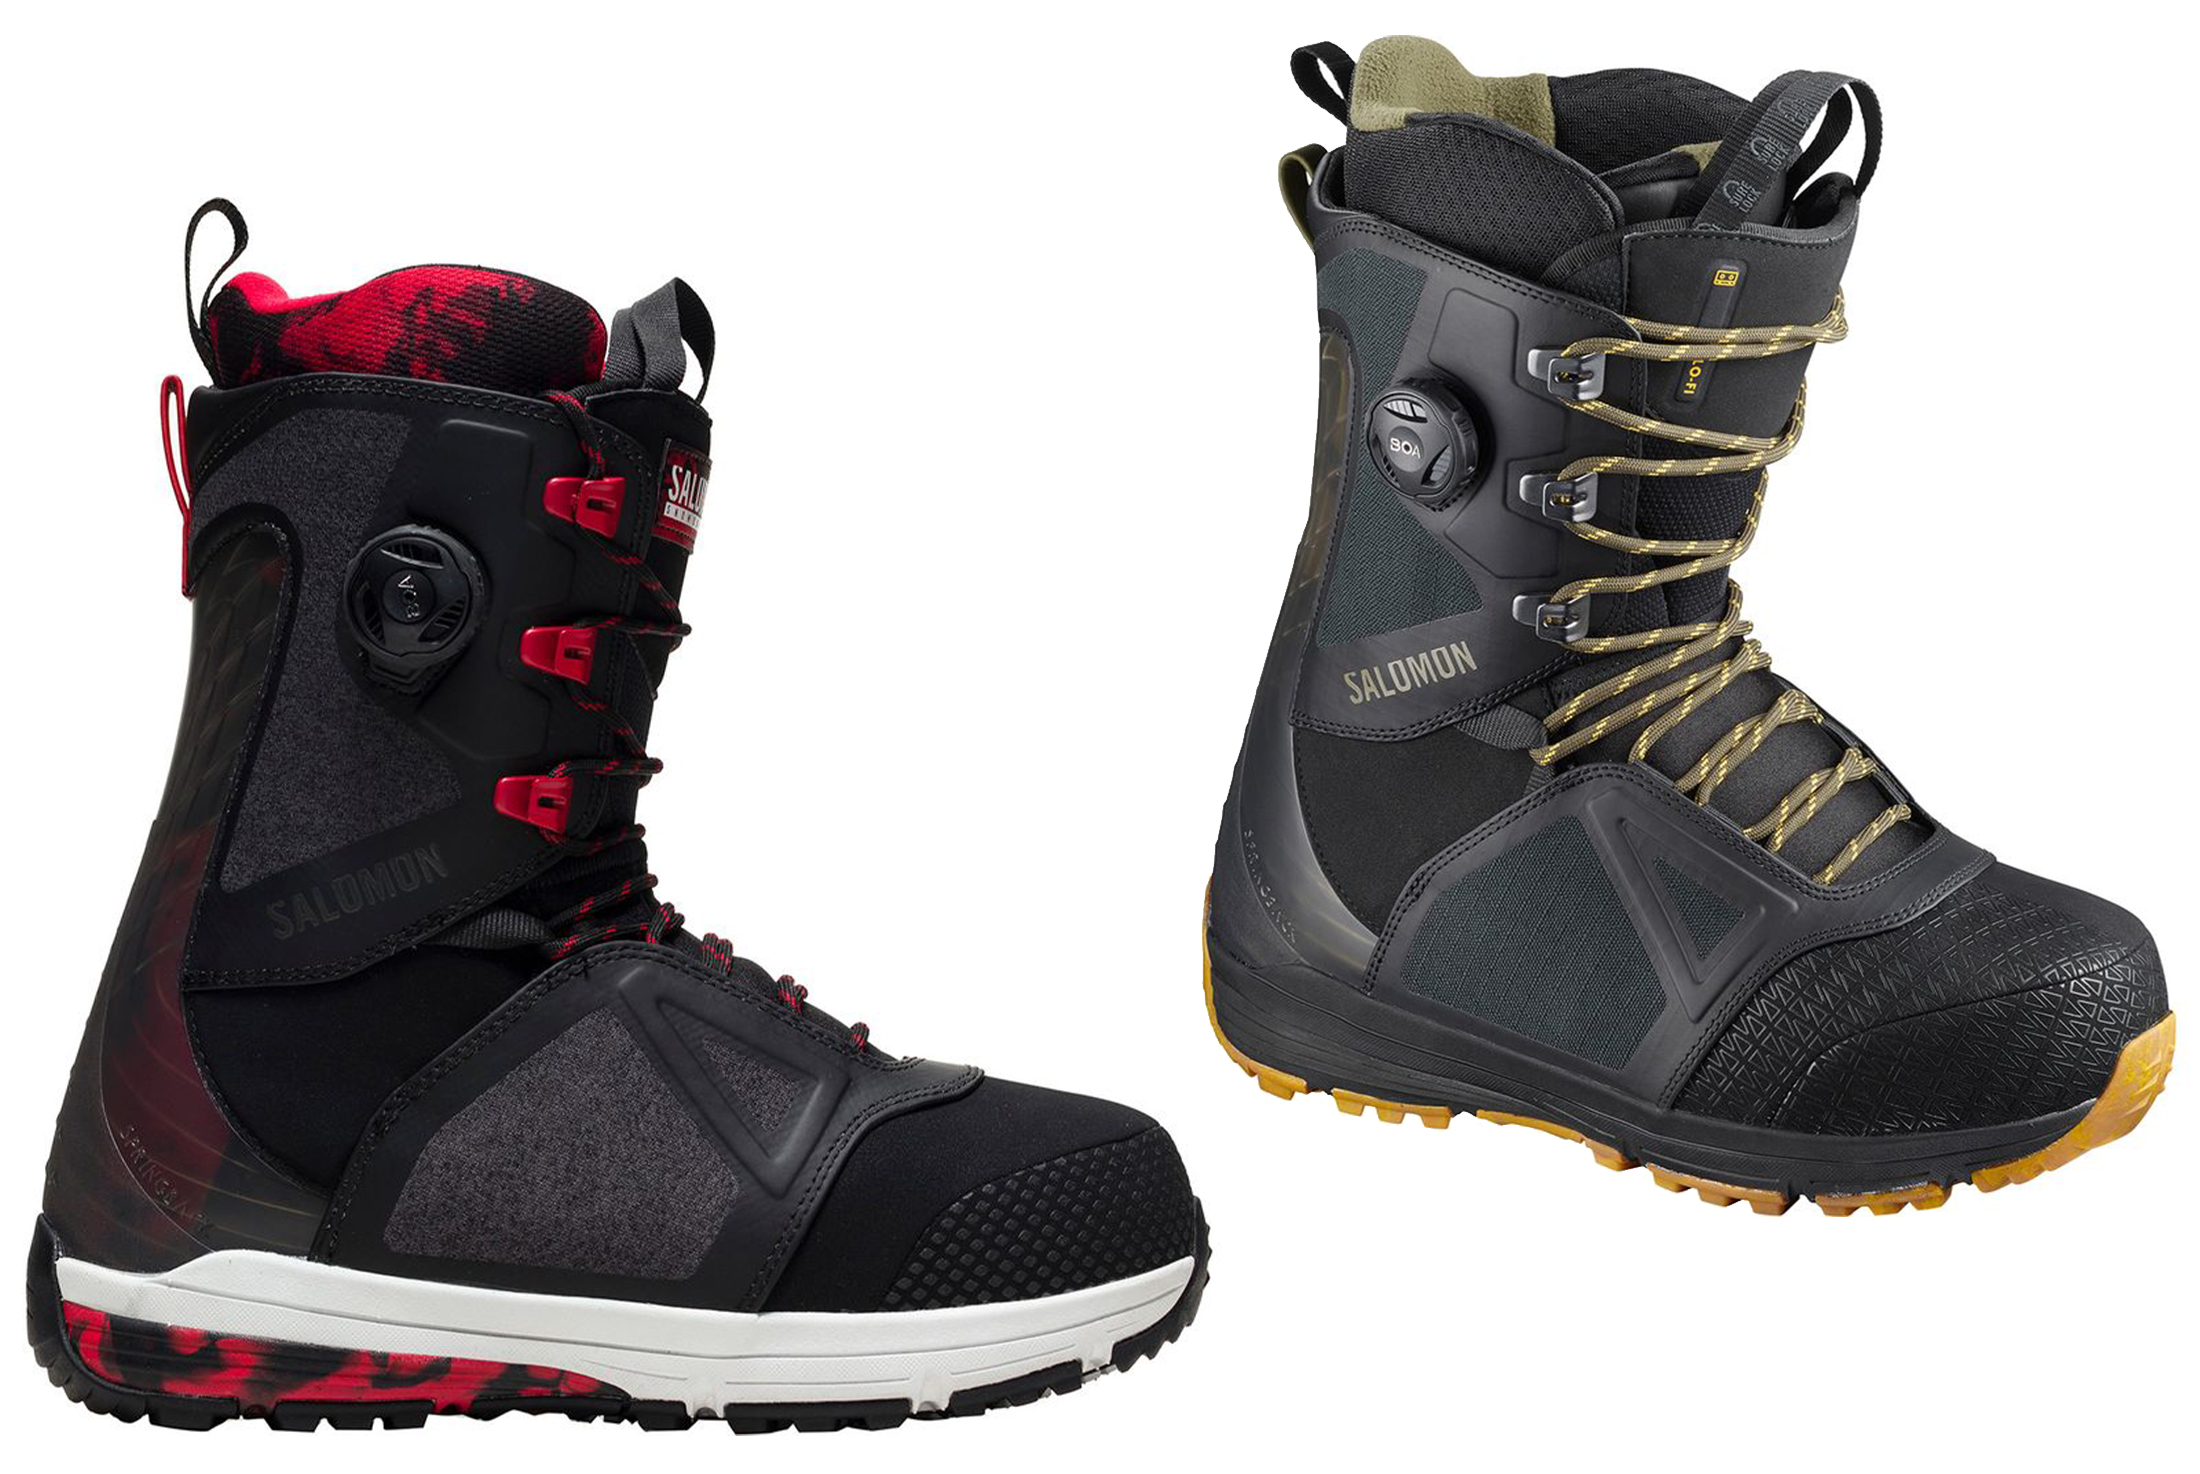 Salomon Lo Fi Snowboard Boot